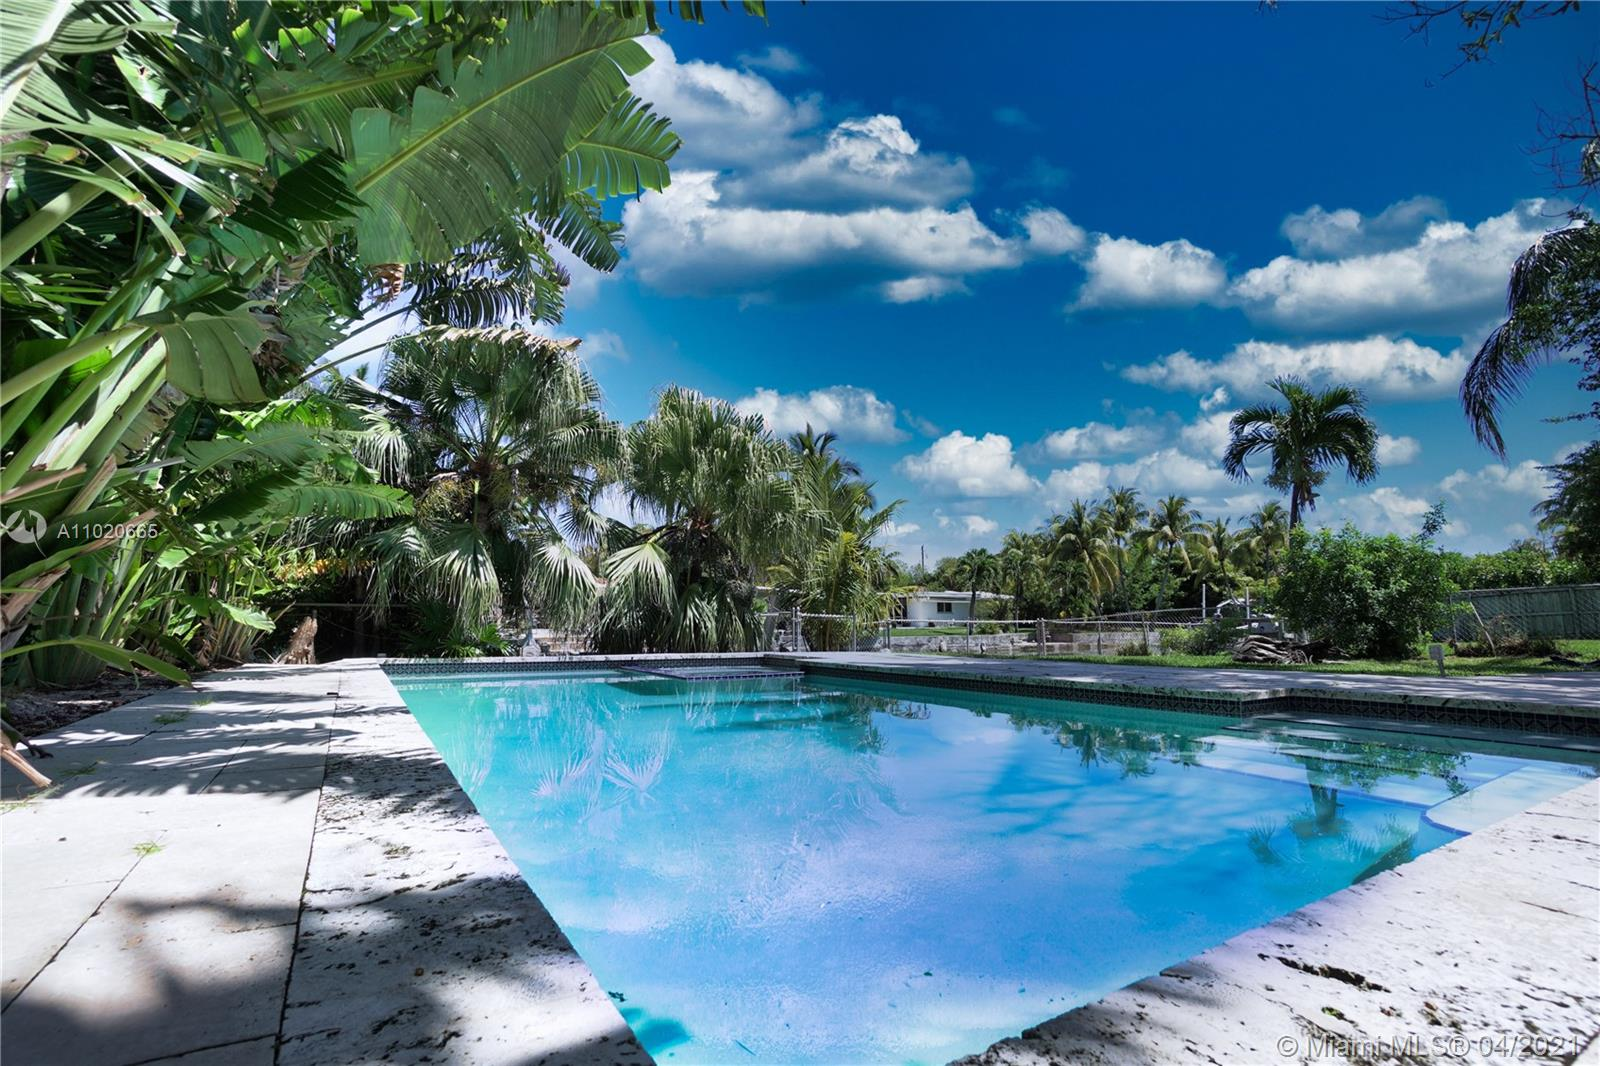 DREAM HOUSE  OPPORTUNITY ! Beautiful 3bd 3bath waterfront and pool home in prestigious, gated Biscayne Point in Miami Beach. Oversized back yard with 60 feet water frontage, private dock and boat lift. Wide canal with ocean access. This home is very spacious with open living and dining areas, florida room and more. Located 5 minutes from Bar Harbor Shops and 5 blocks away from the beach, walking distance from Biscayne Elementary School (highly rated). Property is in a good condition, needs TLC- selling as is.